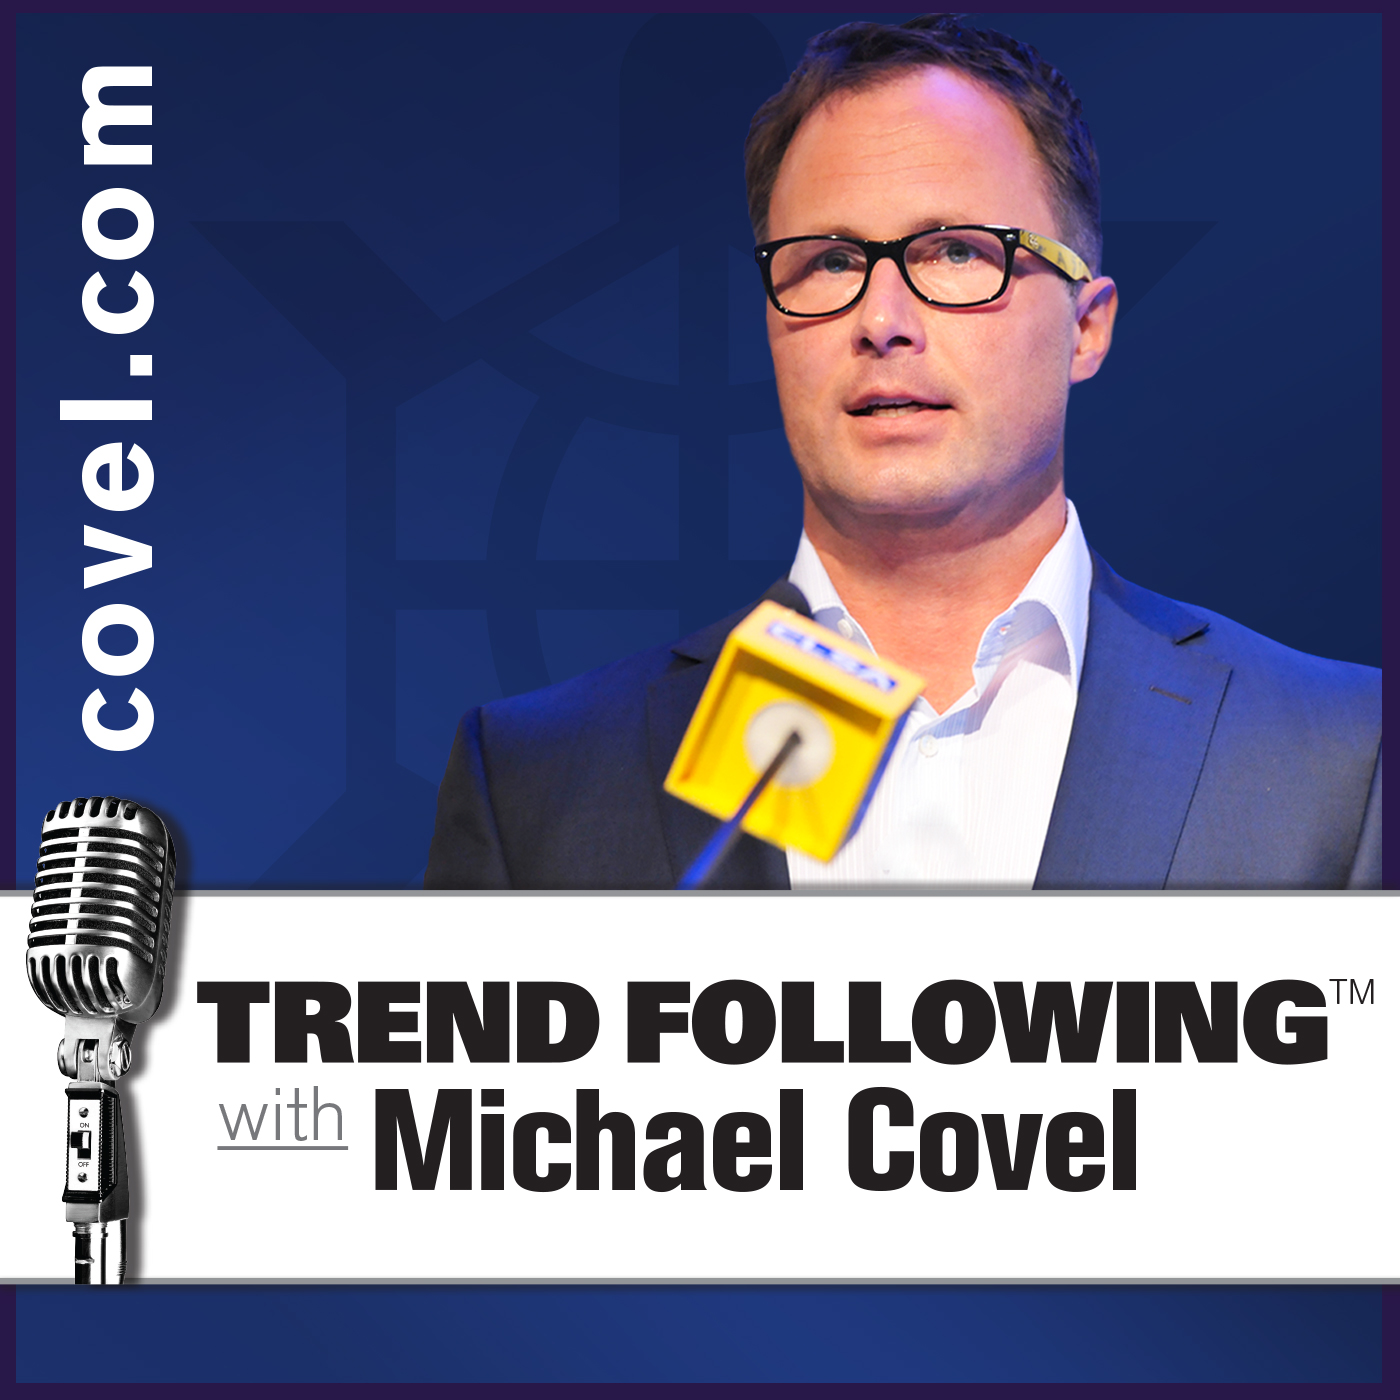 Ep. 485: Jared Dillian Interview with Michael Covel on Trend Following Radio